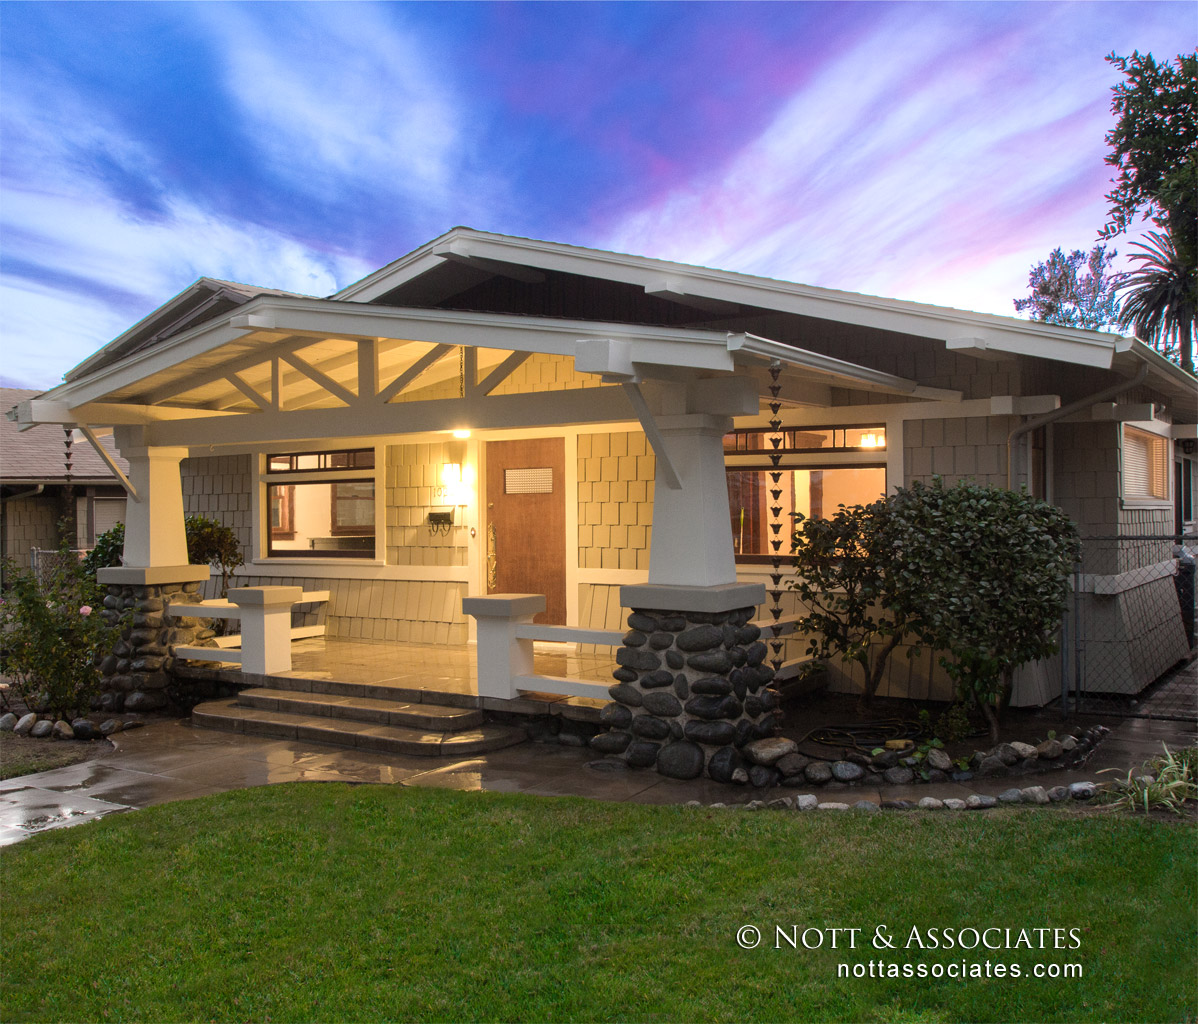 Completely Restored 1910 Craftsman Home In South Pasadena